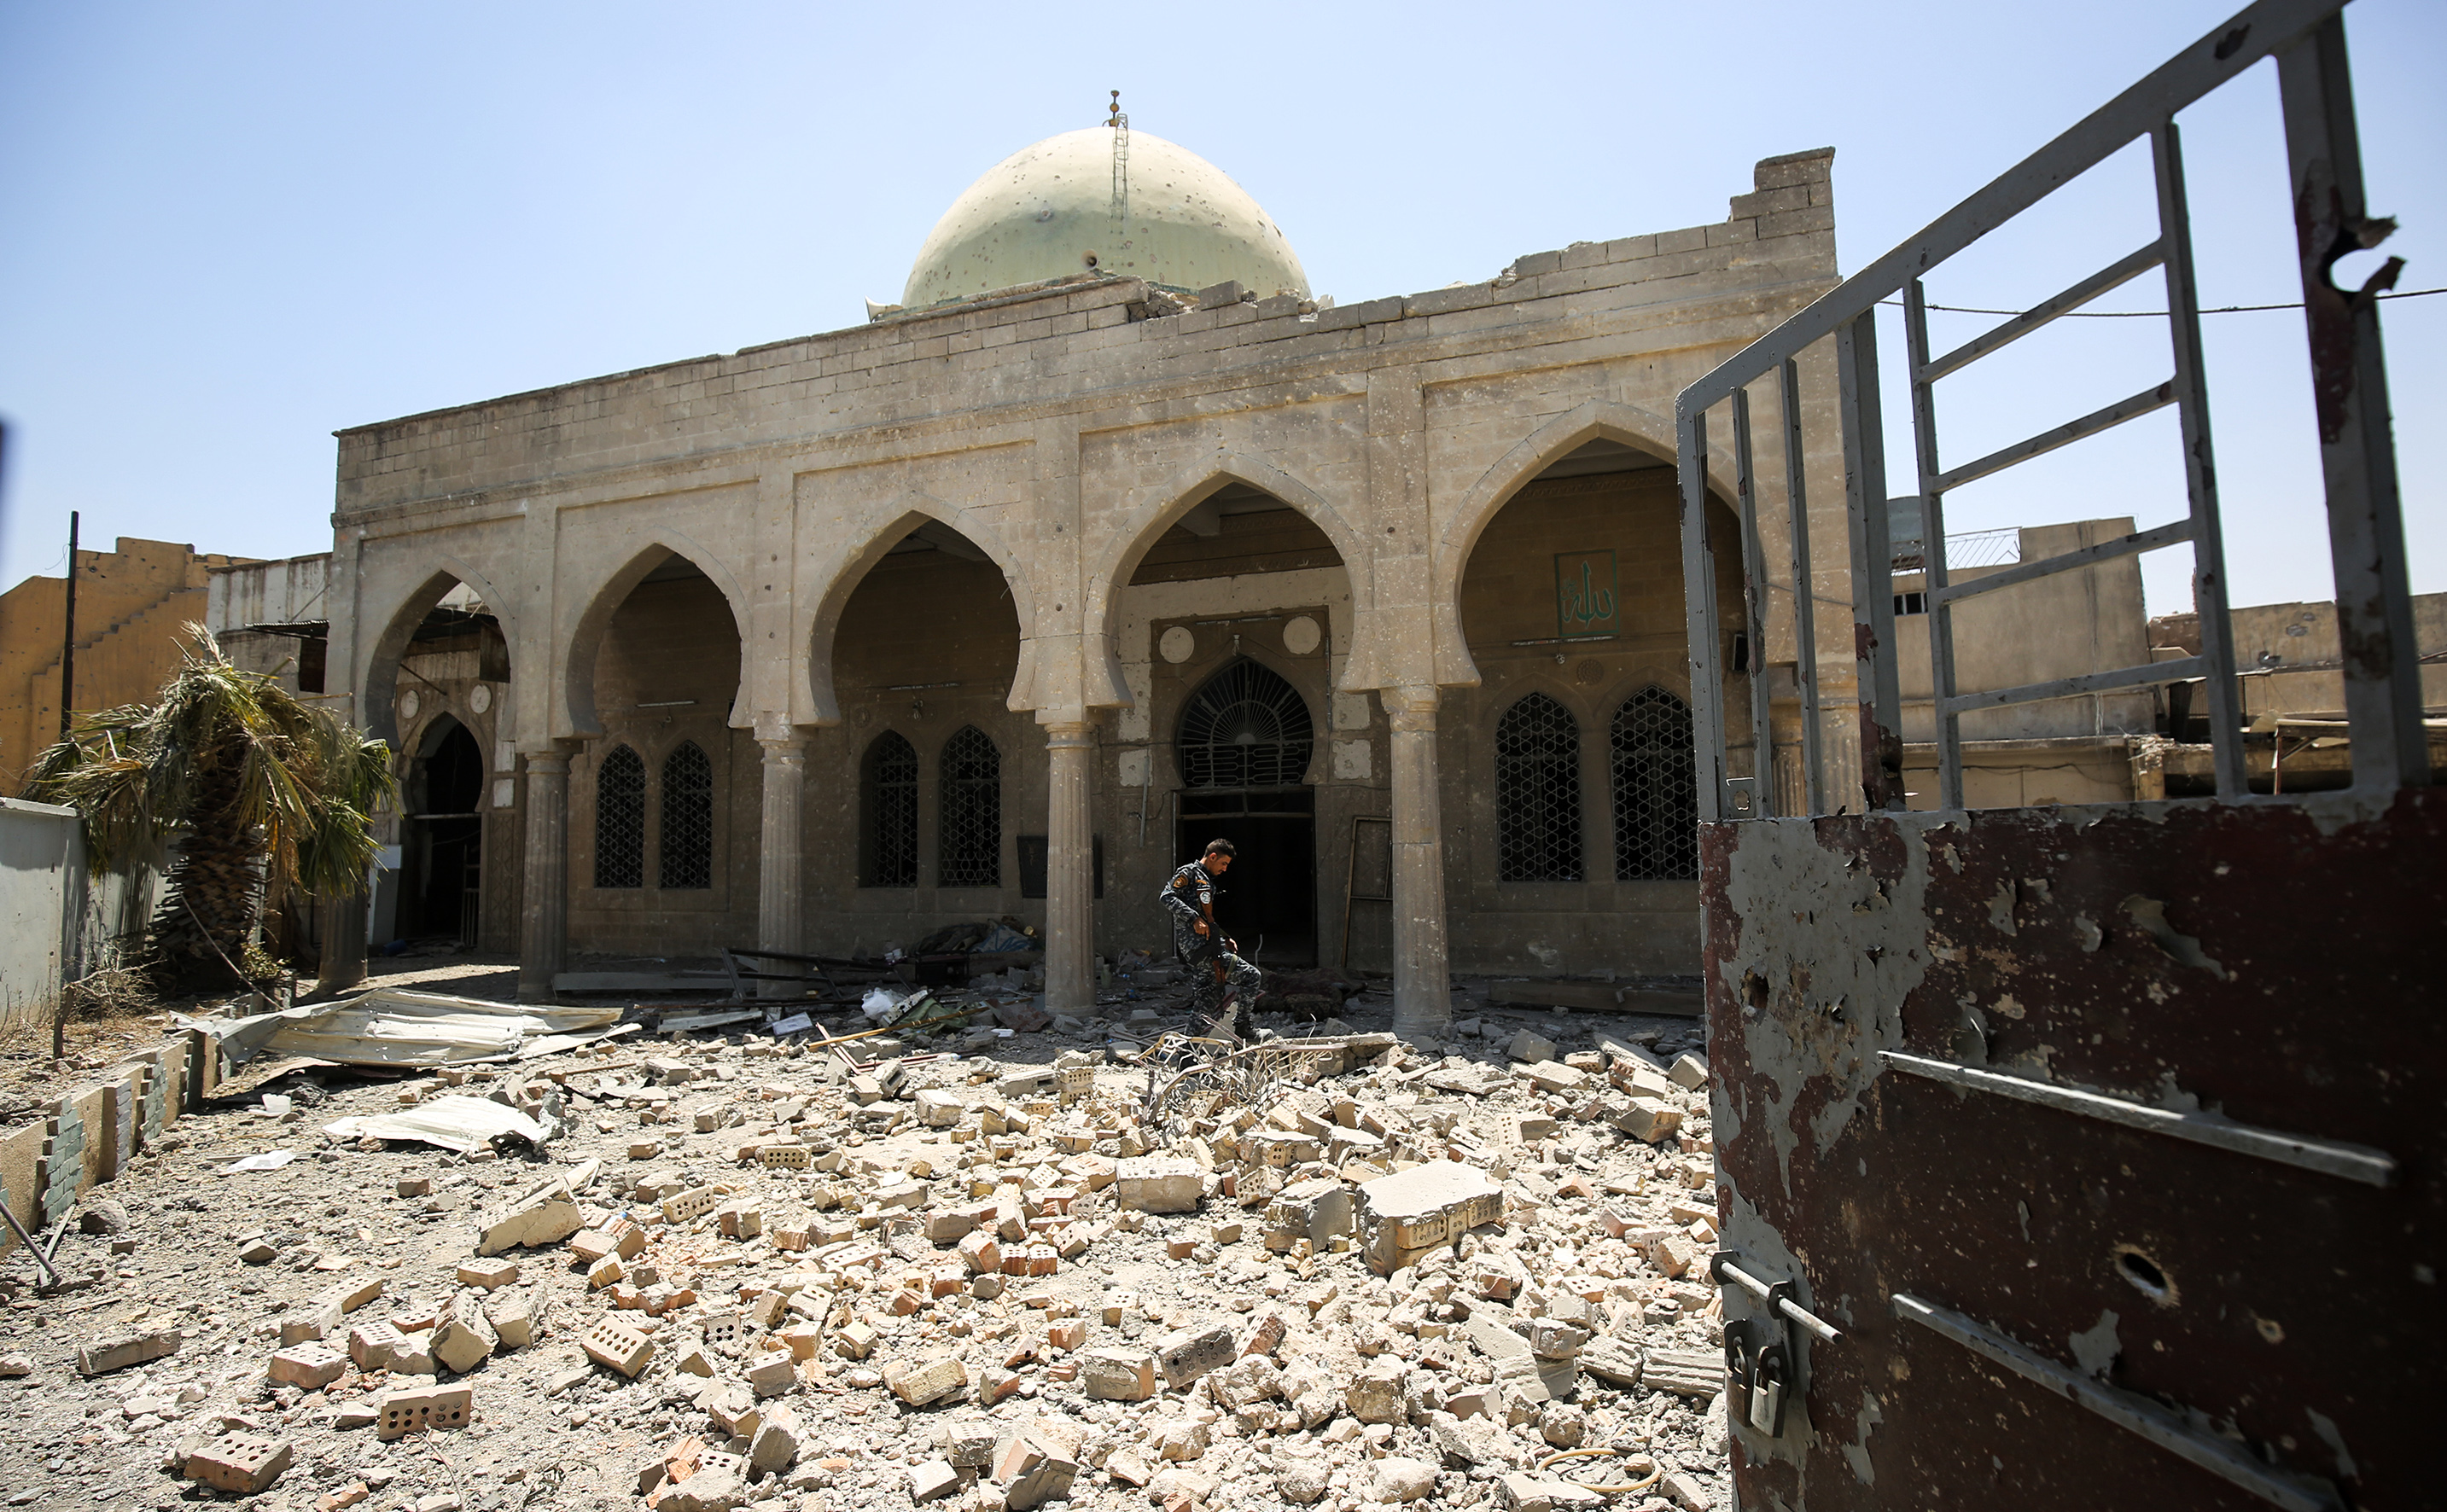 A member of the Iraqi federal police walks through the rubble in the grounds outside the damaged historic 19th century Ziwani mosque in the Old City of Mosul on June 28, 2017, as Iraqi forces inspect damage the building sustained during the offensive to retake the last remaining district from Islamic State (IS) group fighters.